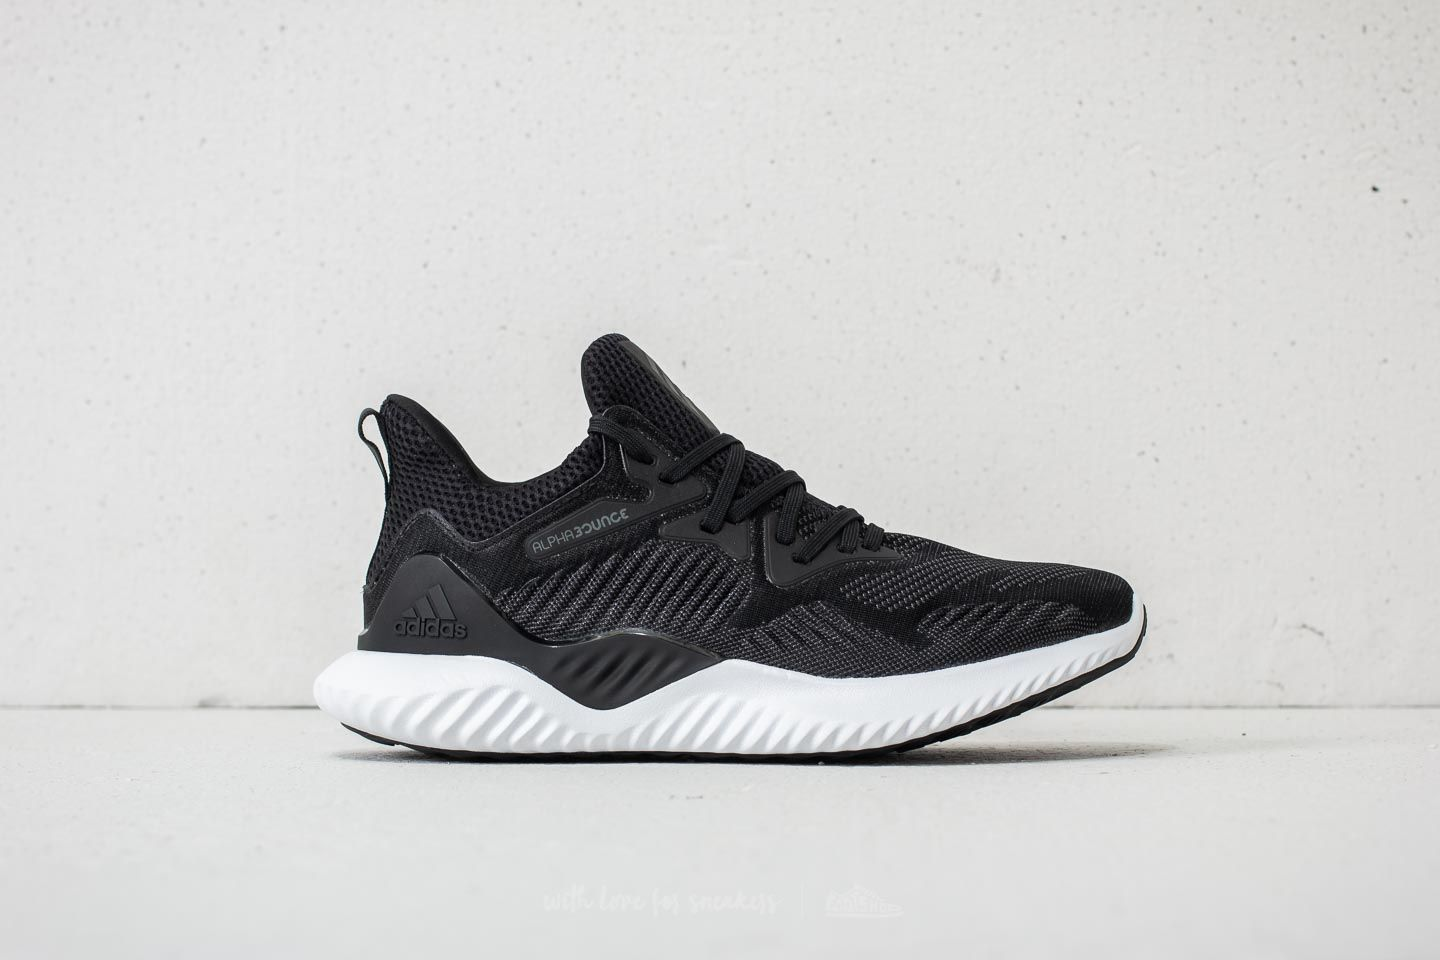 purchase cheap 9db43 f70eb adidas alphabounce beyond W Core Black Core Black Grey Five at a great  price